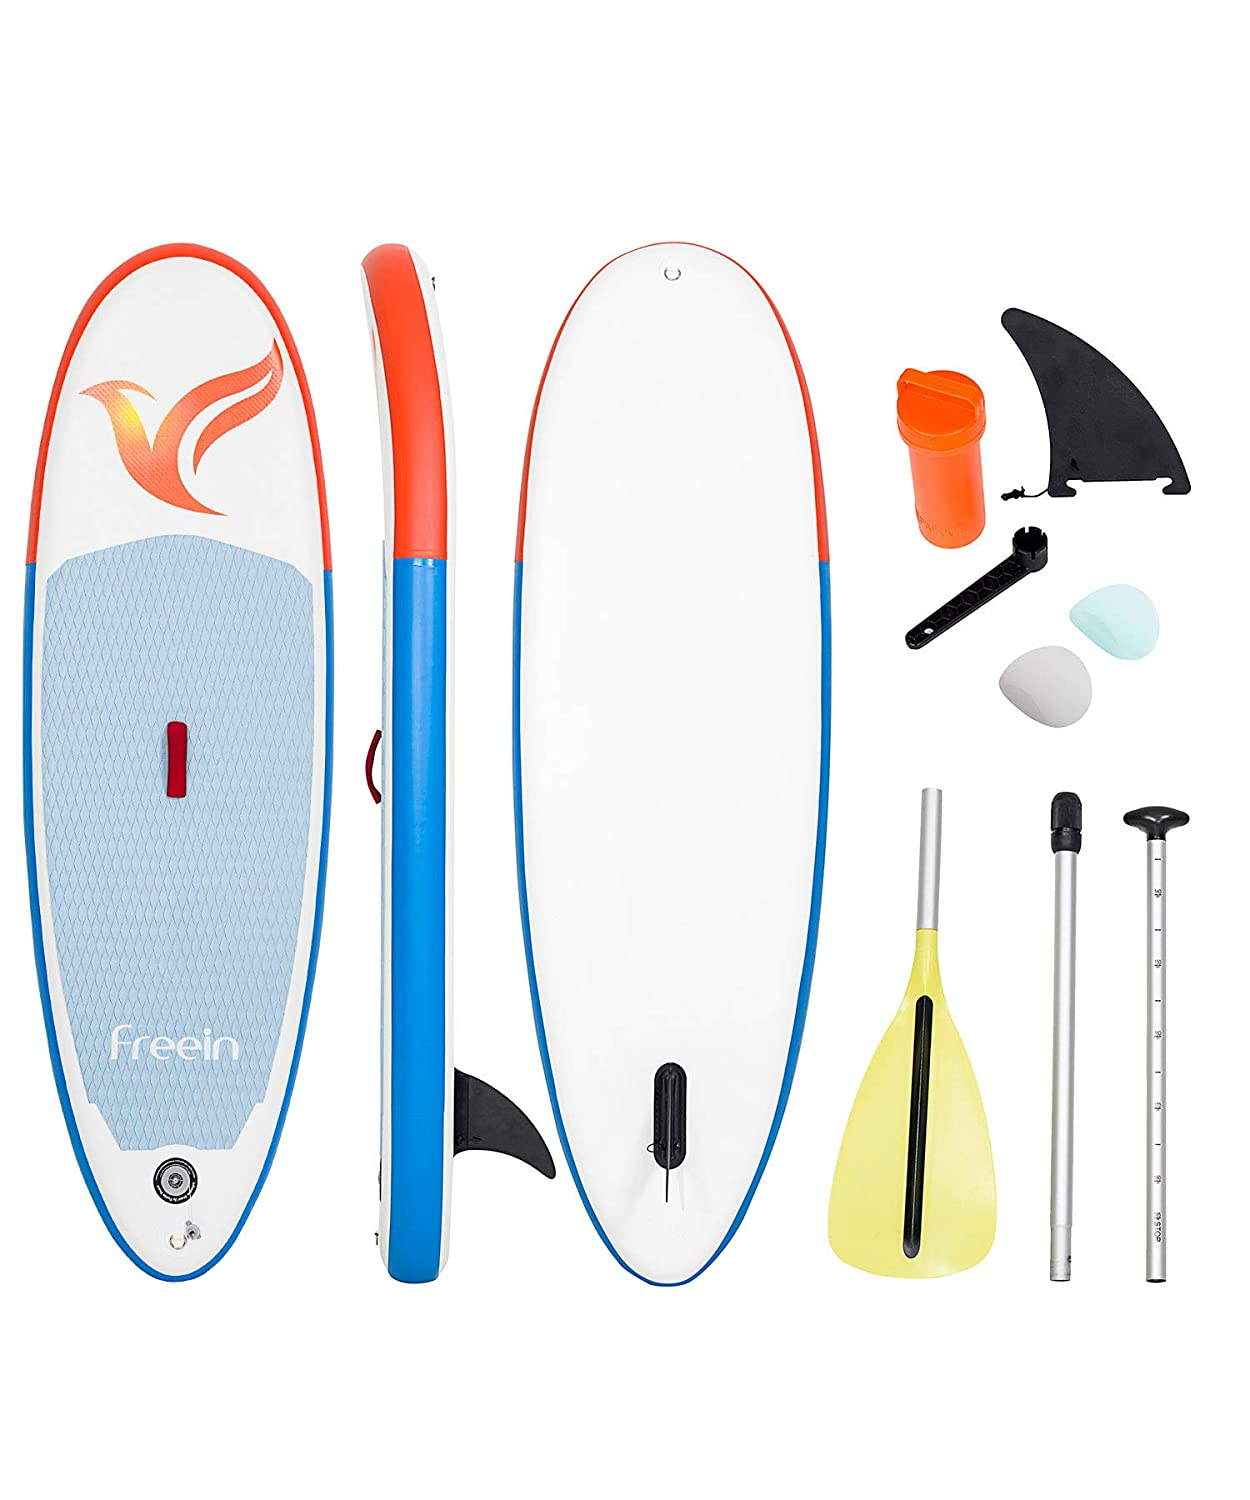 2 Years Warranty Reusable Aluminium Floating Paddle 78x28x6 Inflatable Stand Up Paddle Board Freein Cruise SUP Set for Kids